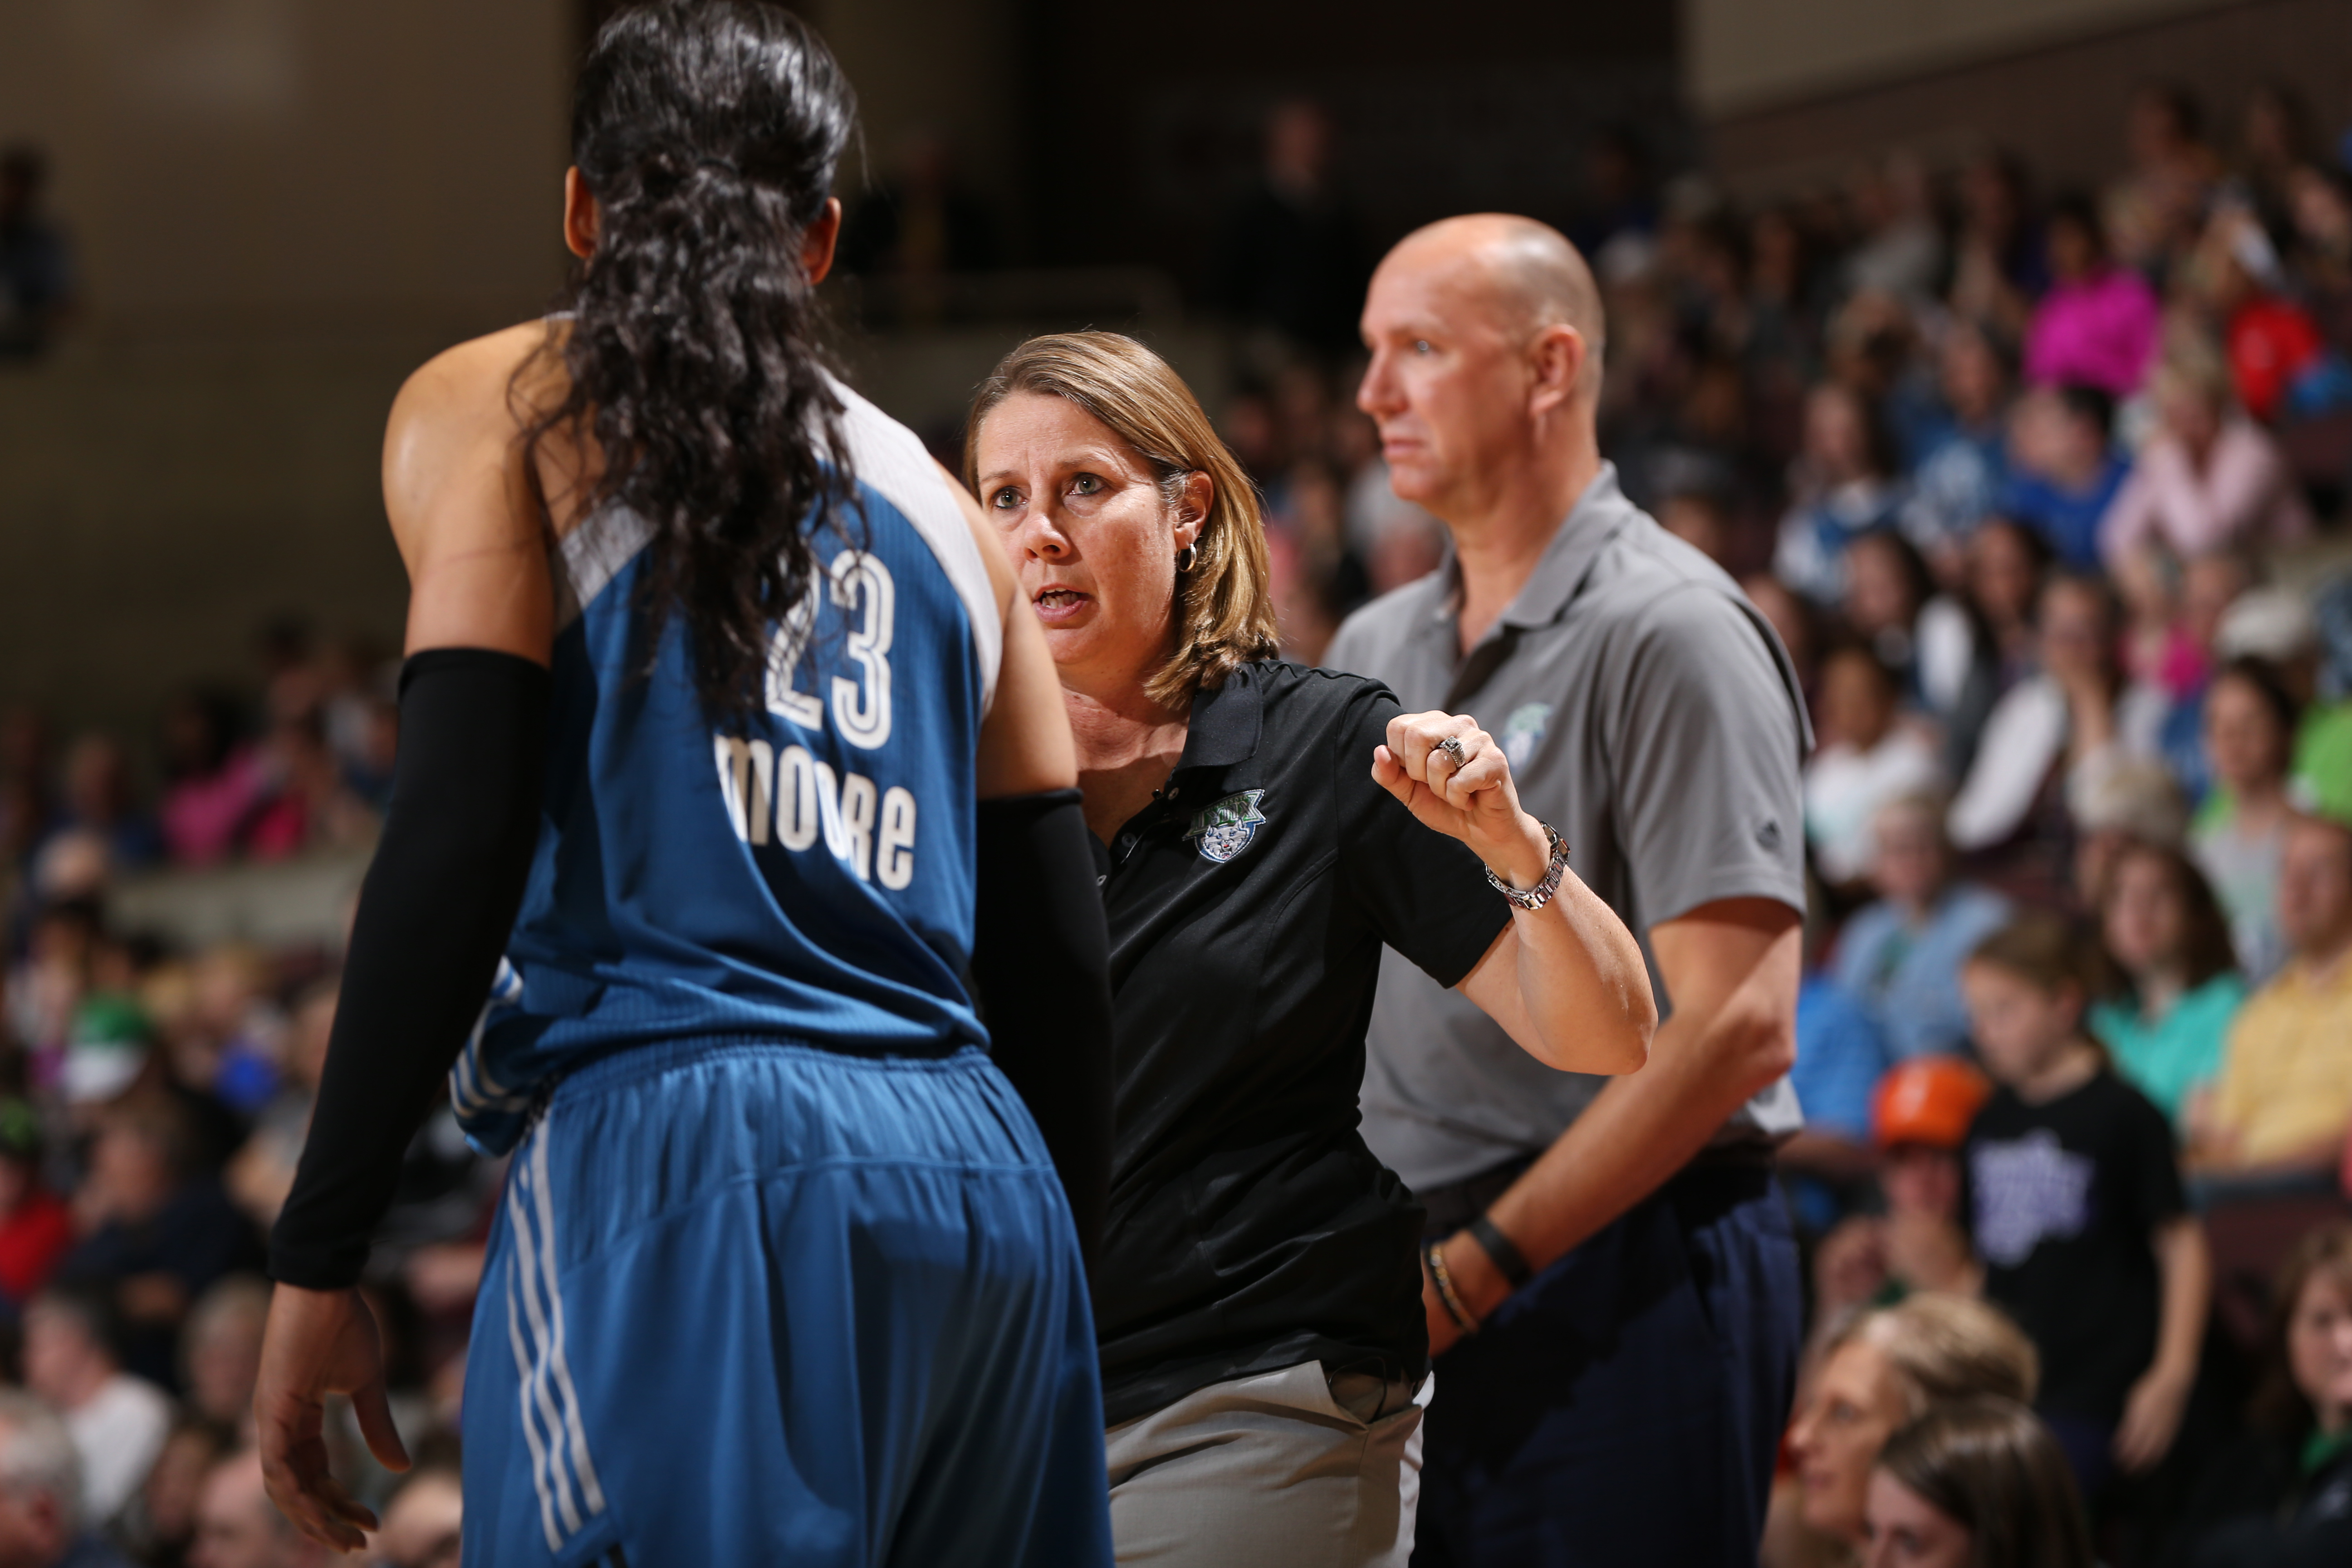 ROCHESTER, MN - MAY 8: Maya Moore #23 of the Minnesota Lynx and Cheryl Reeve Head Coach of the Minnesota Lynx during the preseason game against the Washington Mystics on May 8, 2016 at the Mayo Civic Center in Rochester, Minnesota. NOTE TO USER: User expressly acknowledges and agrees that, by downloading and or using this Photograph, user is consenting to the terms and conditions of the Getty Images License Agreement. Mandatory Copyright Notice: Copyright 2016 NBAE (Photo by David Sherman/NBAE via Getty Images)